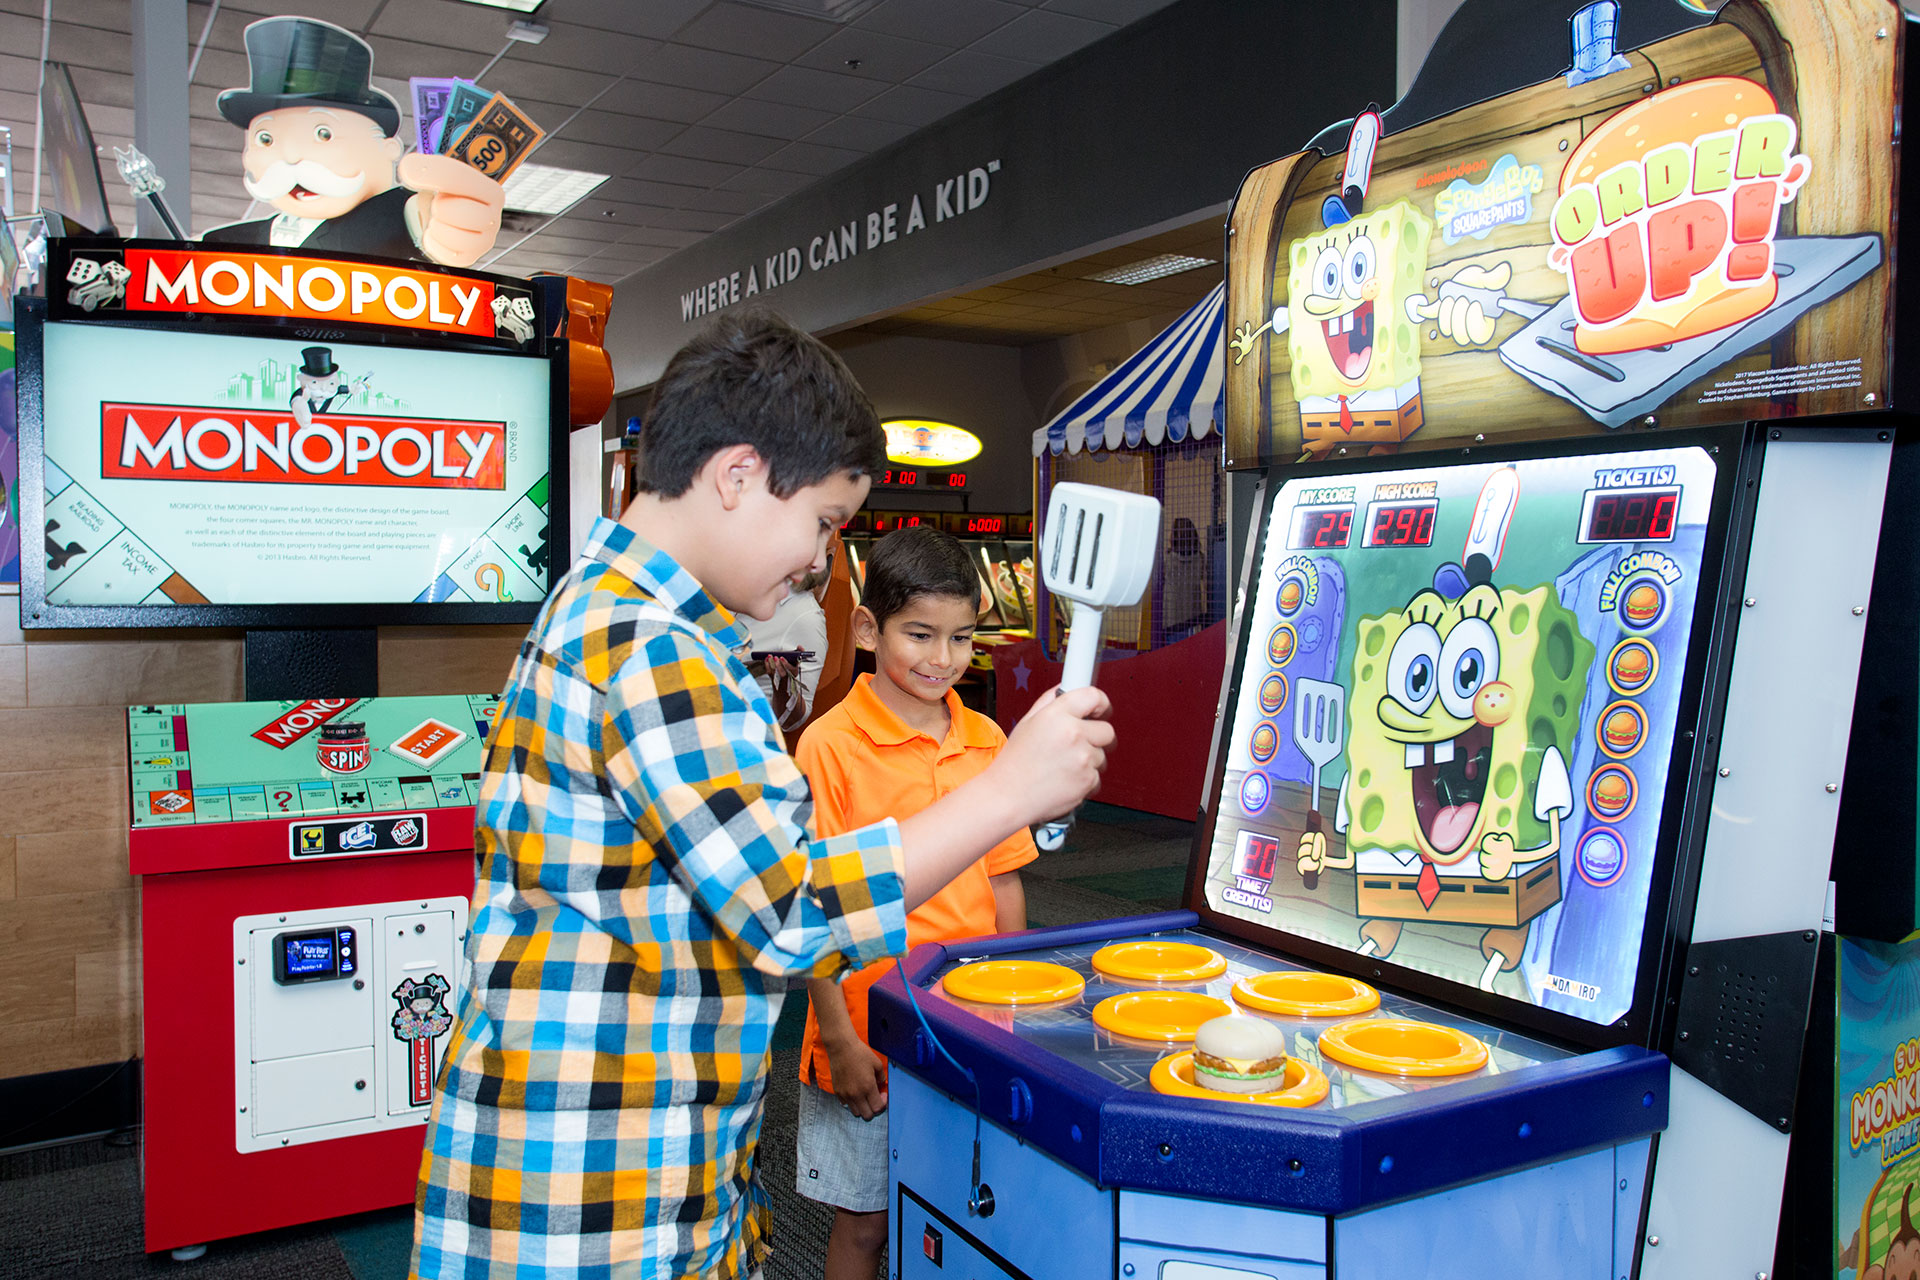 Two kids playing arcade game